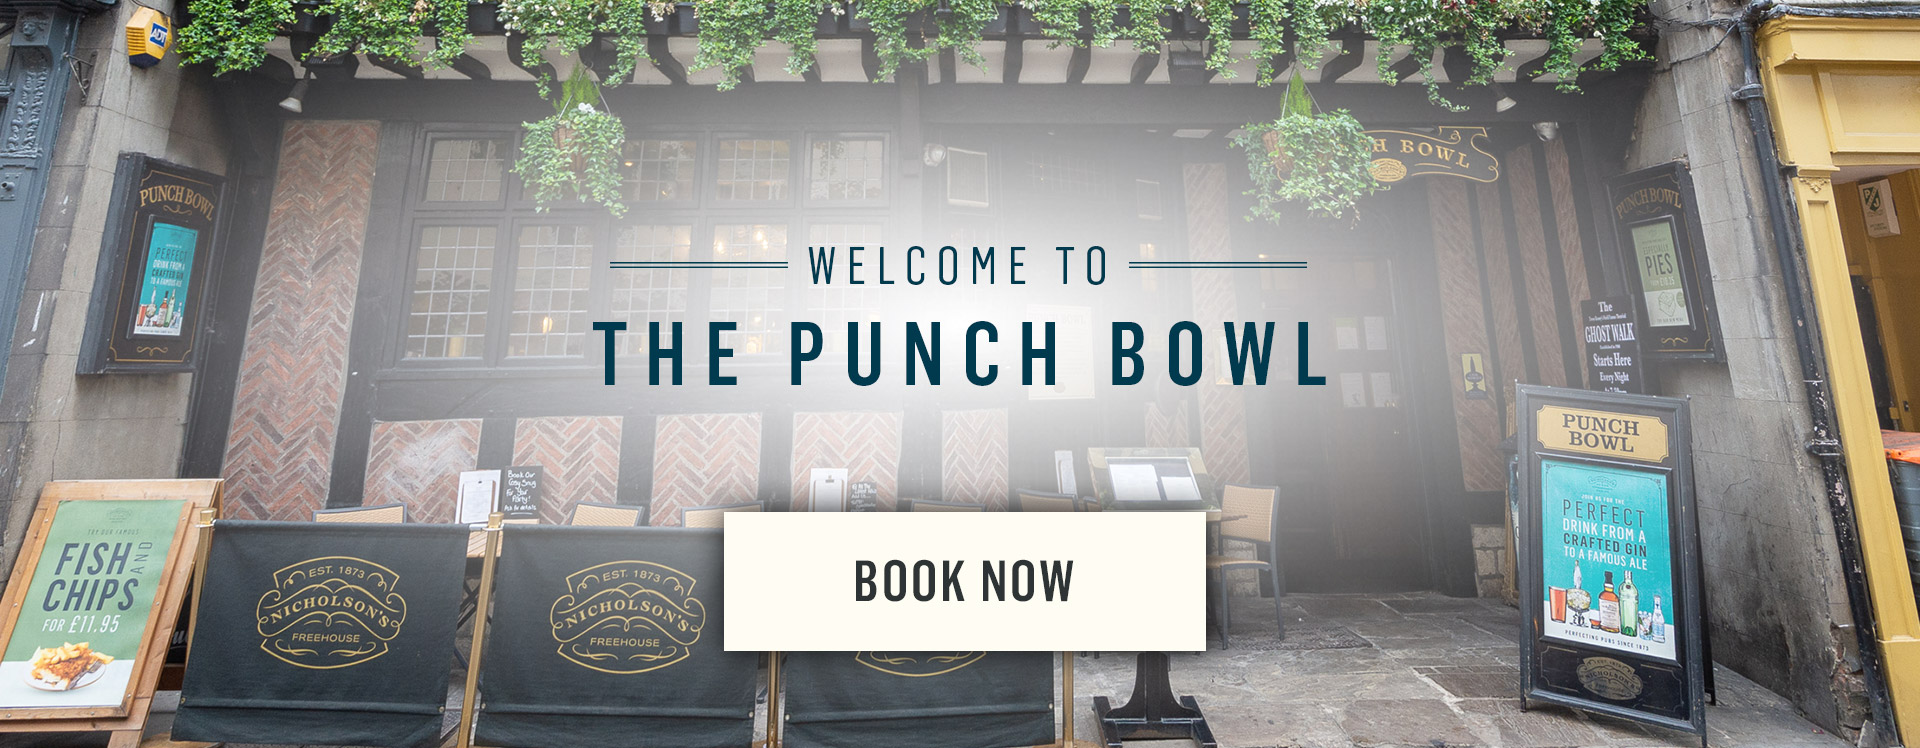 Welcome to The Punch Bowl - Book Now